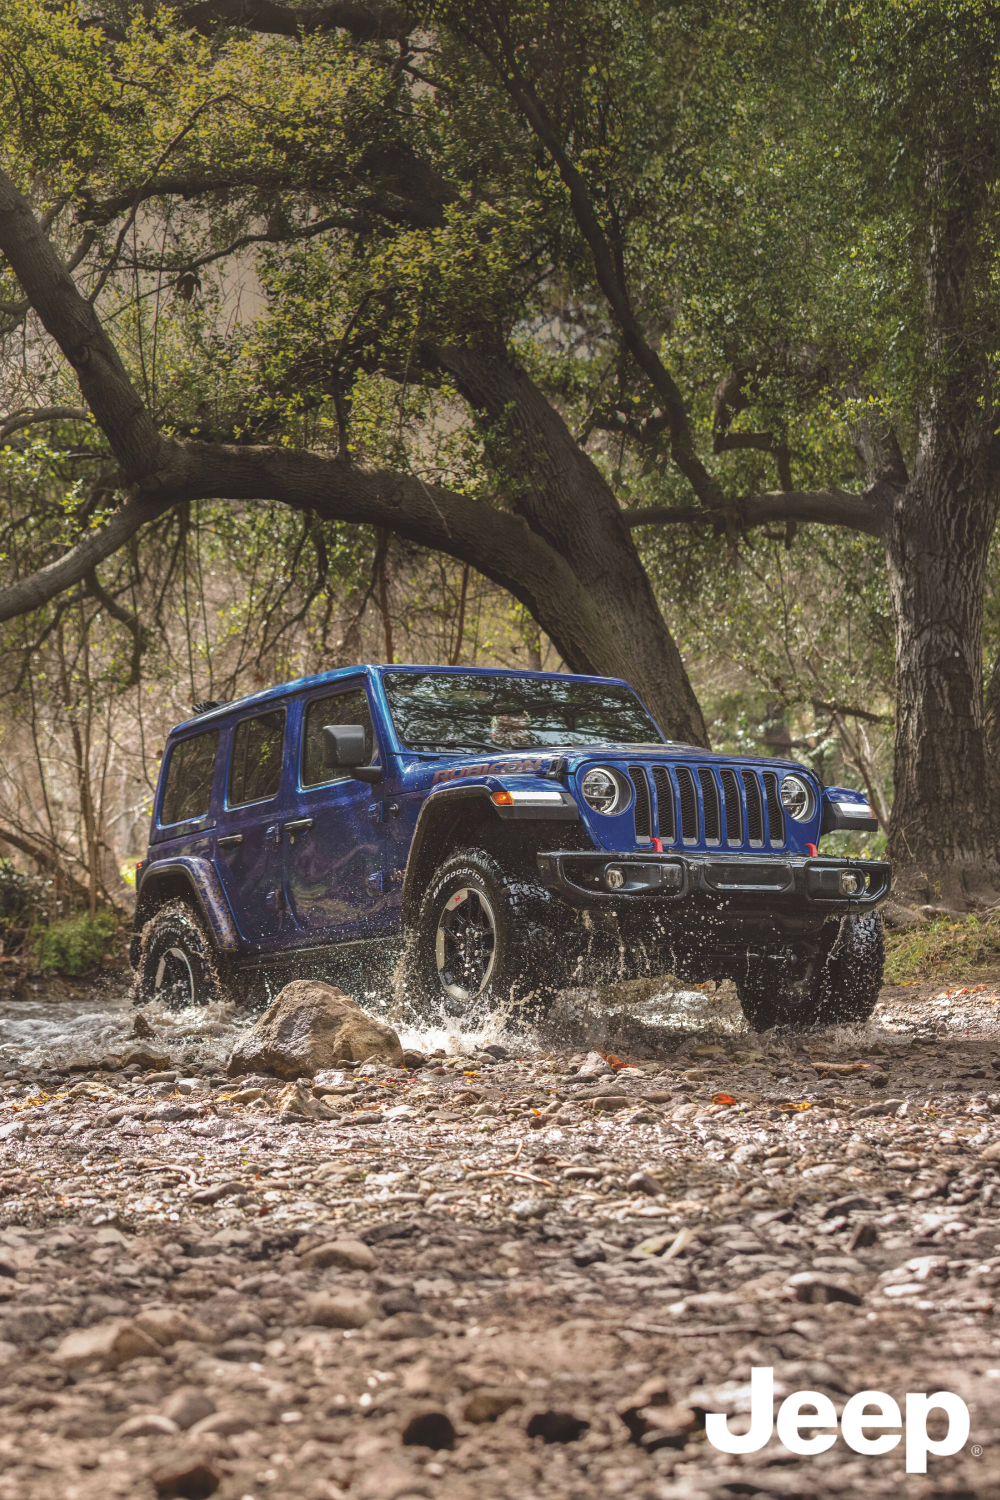 Trail Rated Tough in 2020 Jeep wrangler, Jeep wrangler